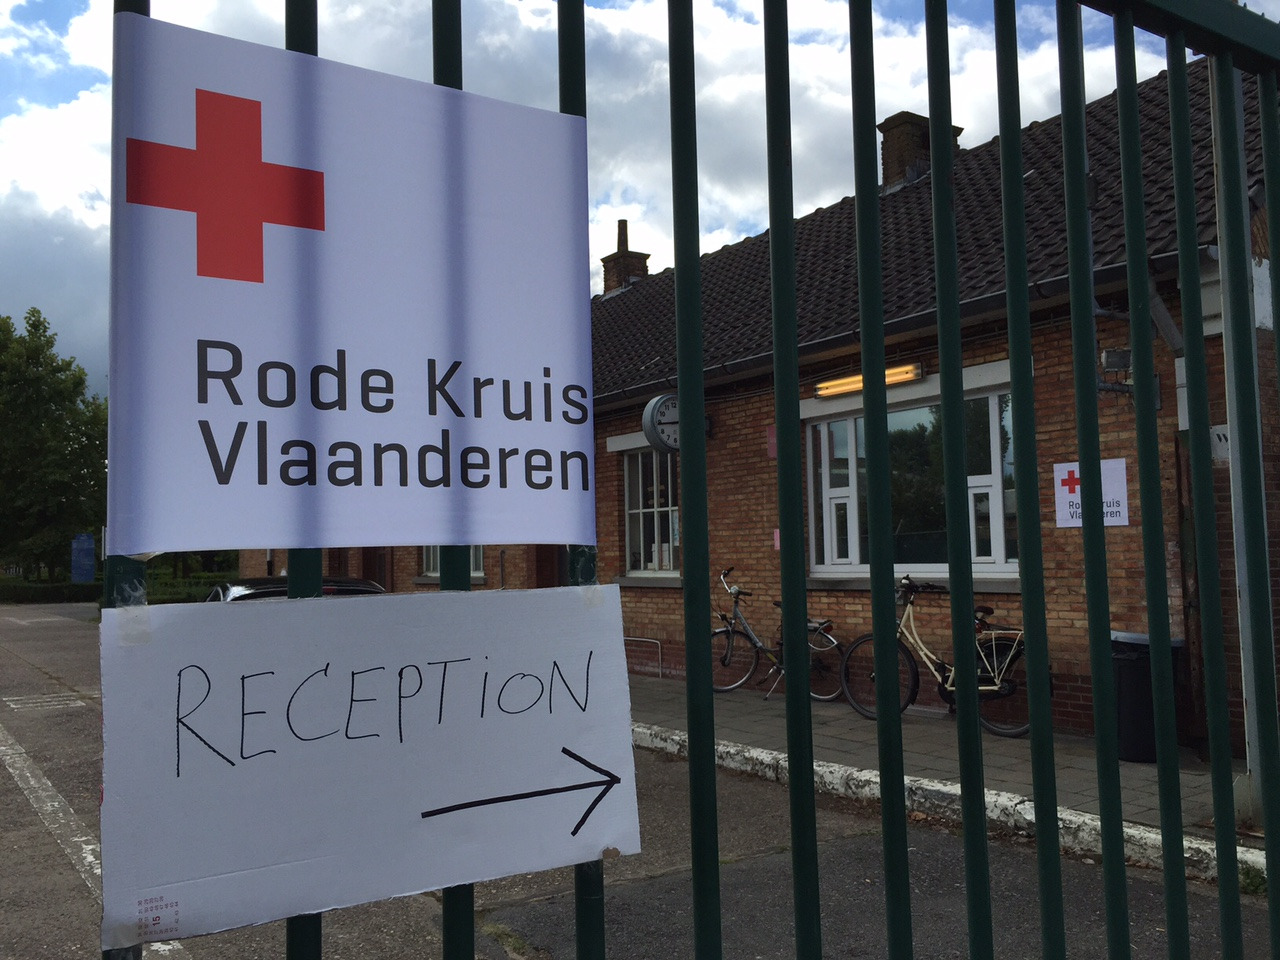 The Belgian Red Cross has set up a reception center for migrants in Sijsele. (WTOP/Kate Ryan)